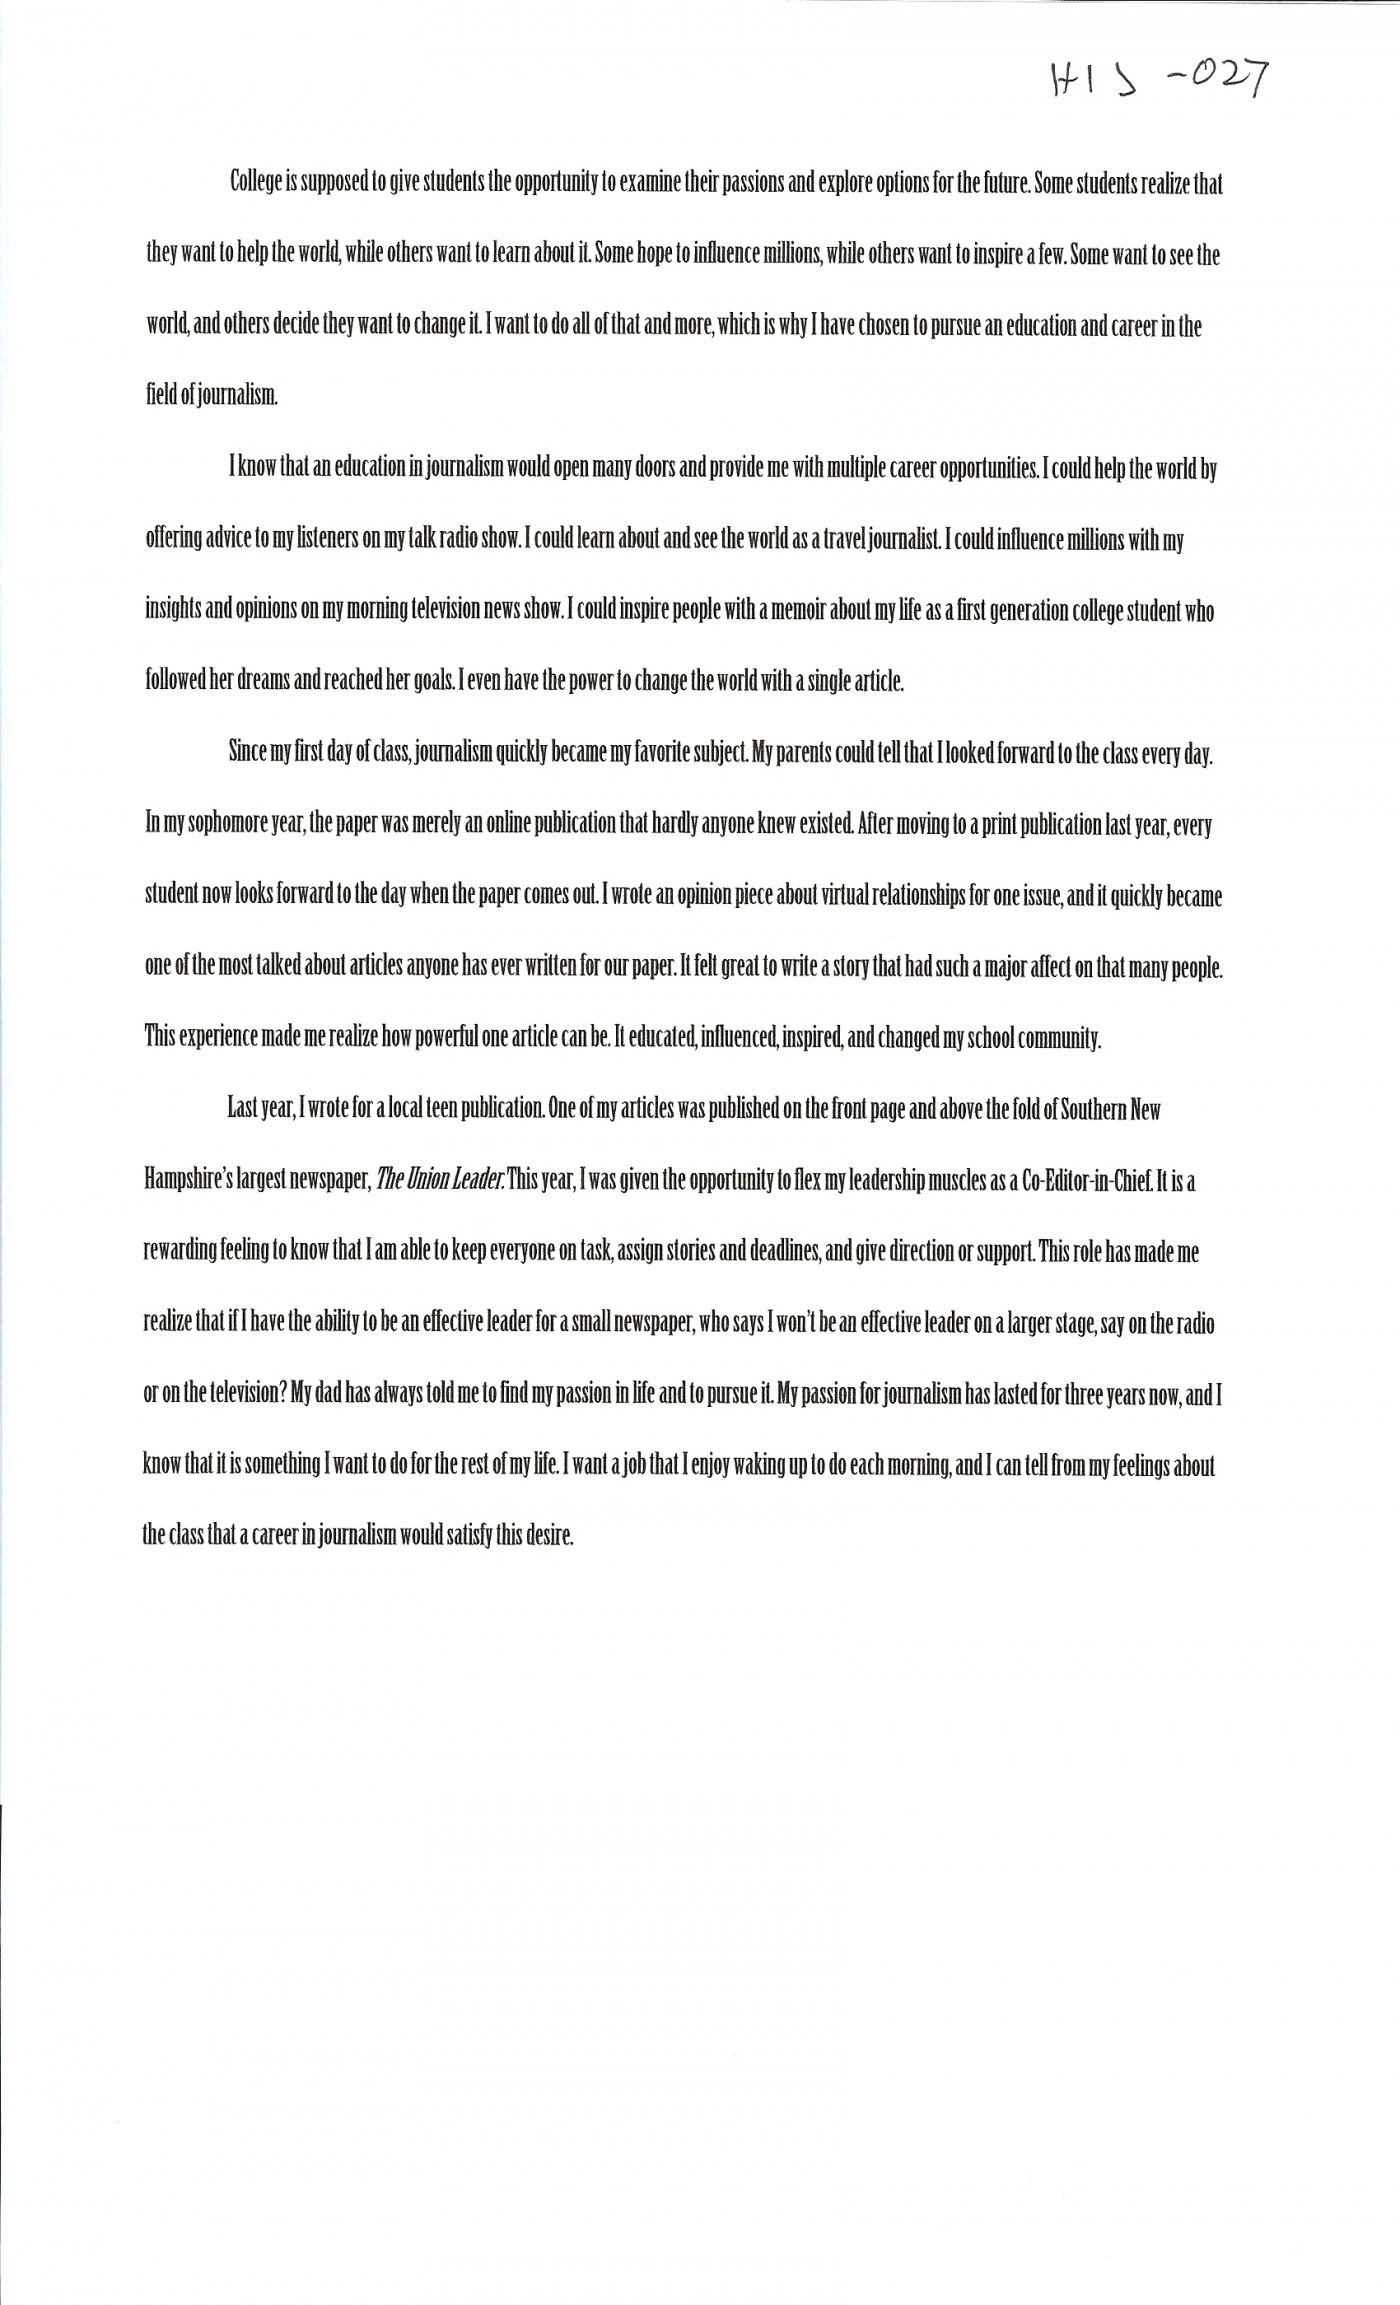 026 Essay Example First Day College Magnificent At Quotations My Pdf 1400